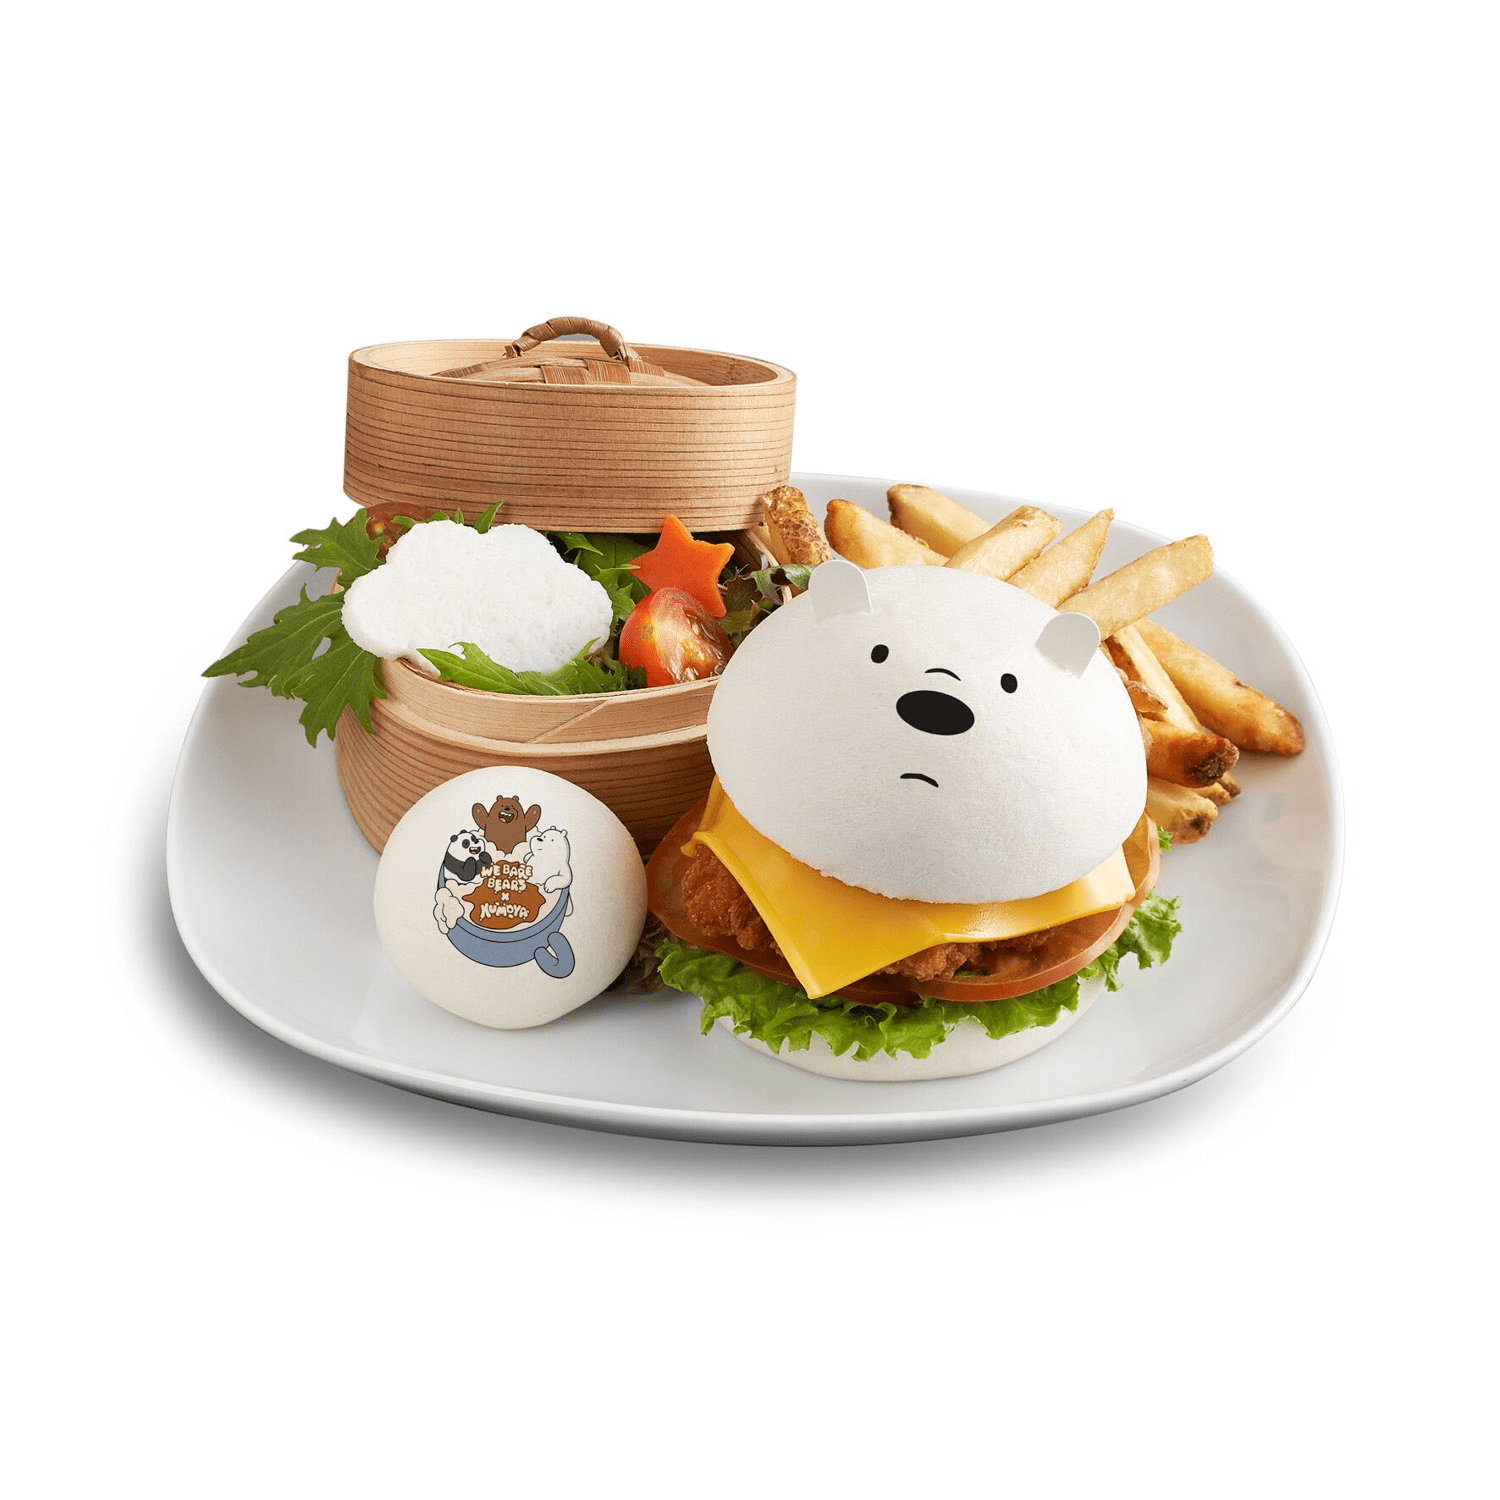 We Bare Bears Pop-Up Cafe